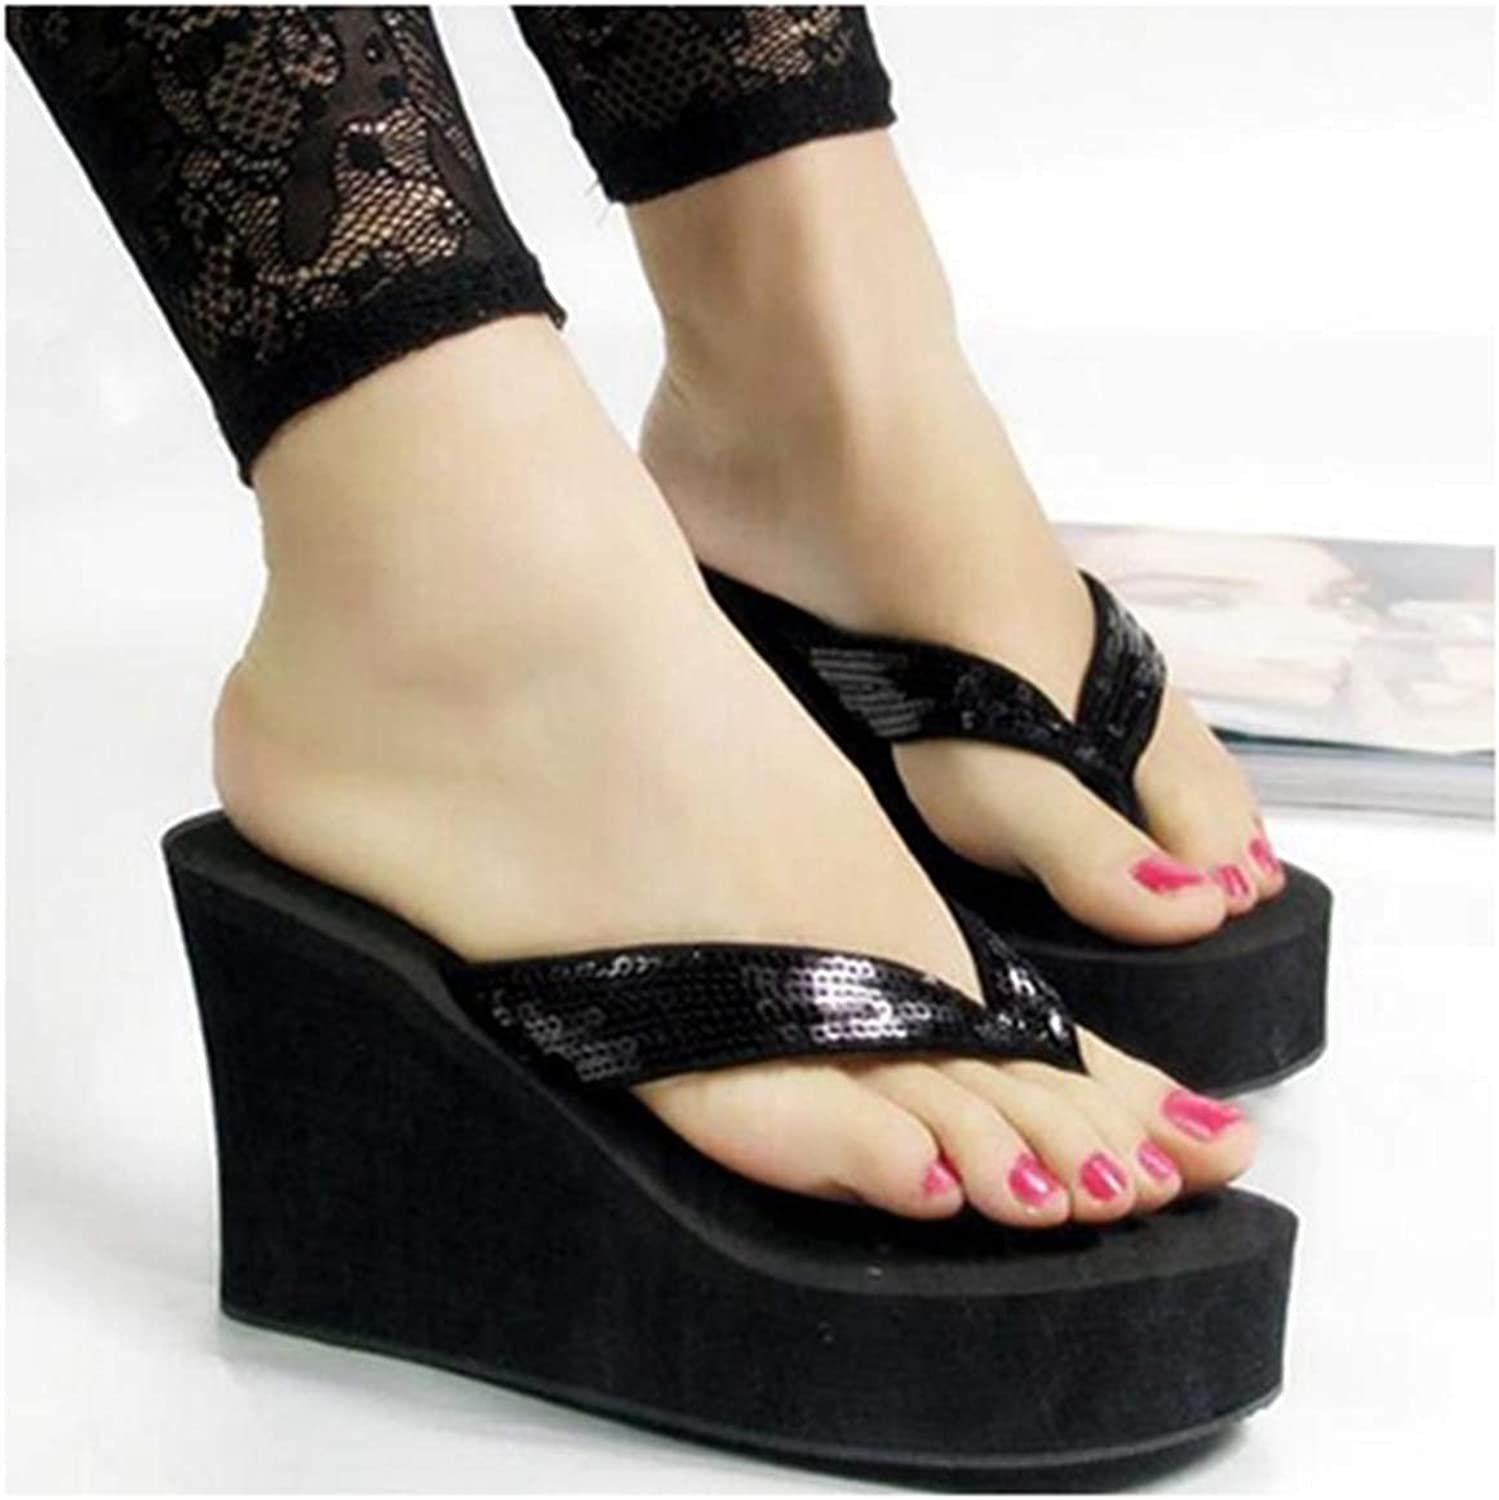 Women's Super high Heel Sandals with Platform Wedges Ladies shoes Fashion Bling